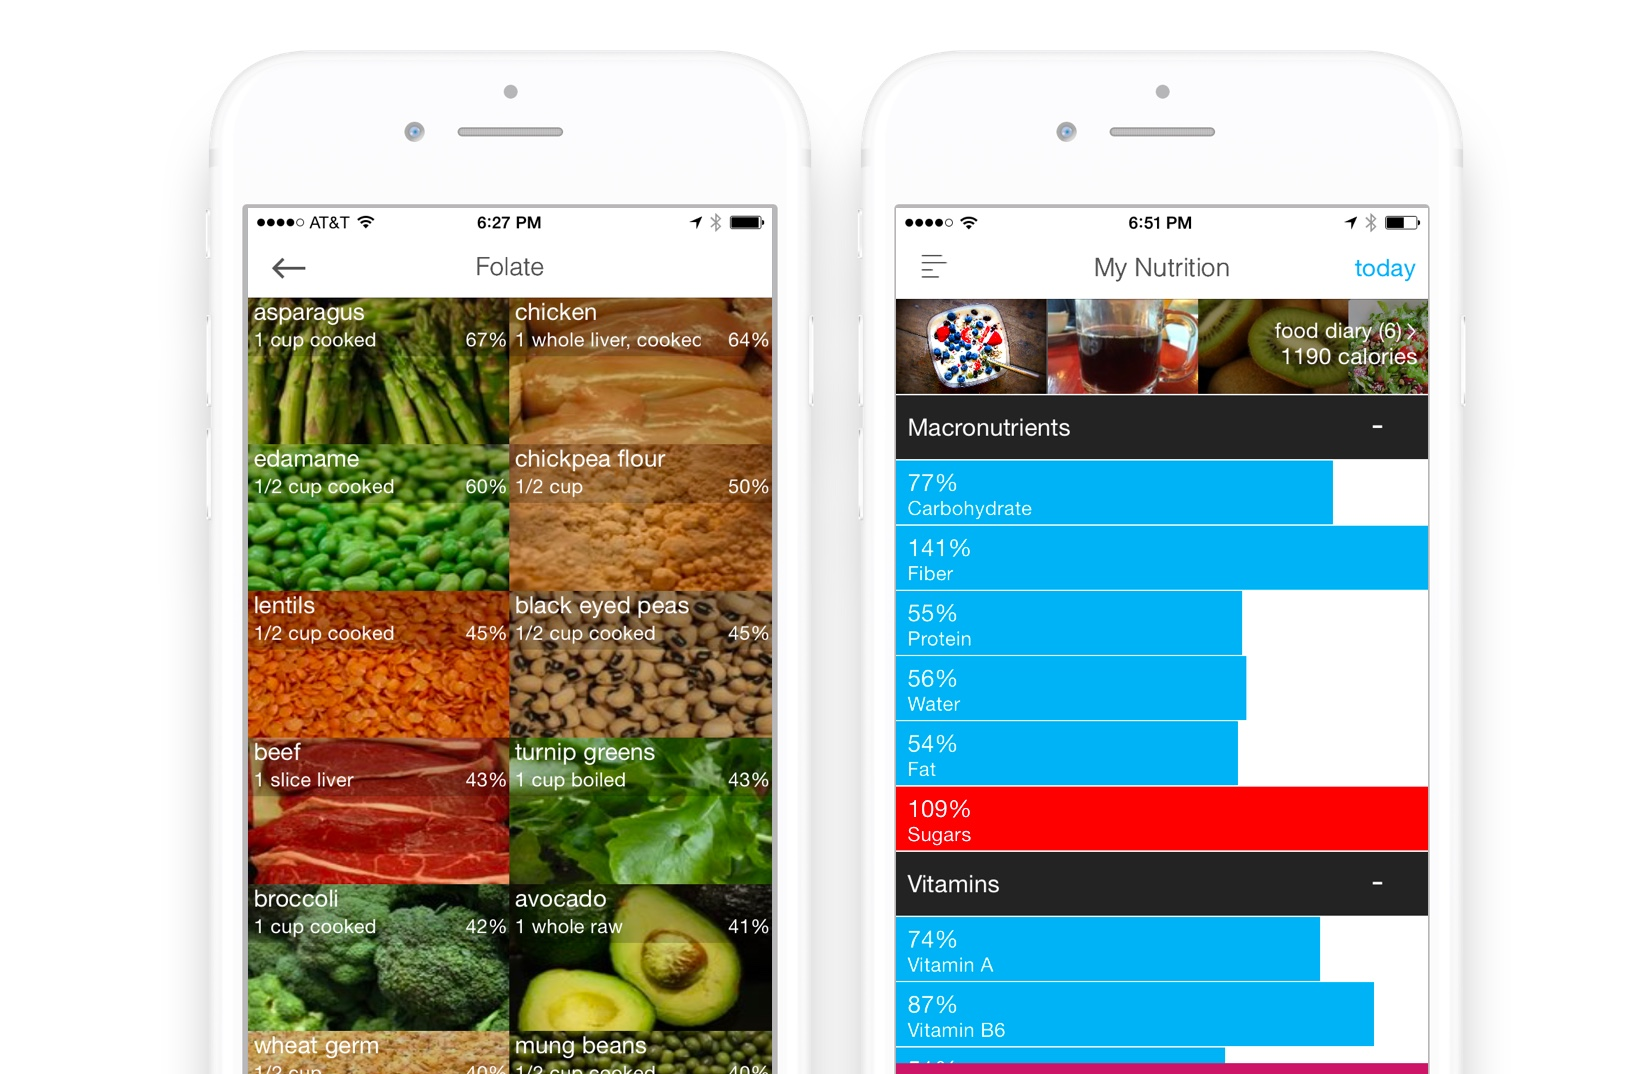 Micronutrient tracking for folate and vitamins using the Wholesome app